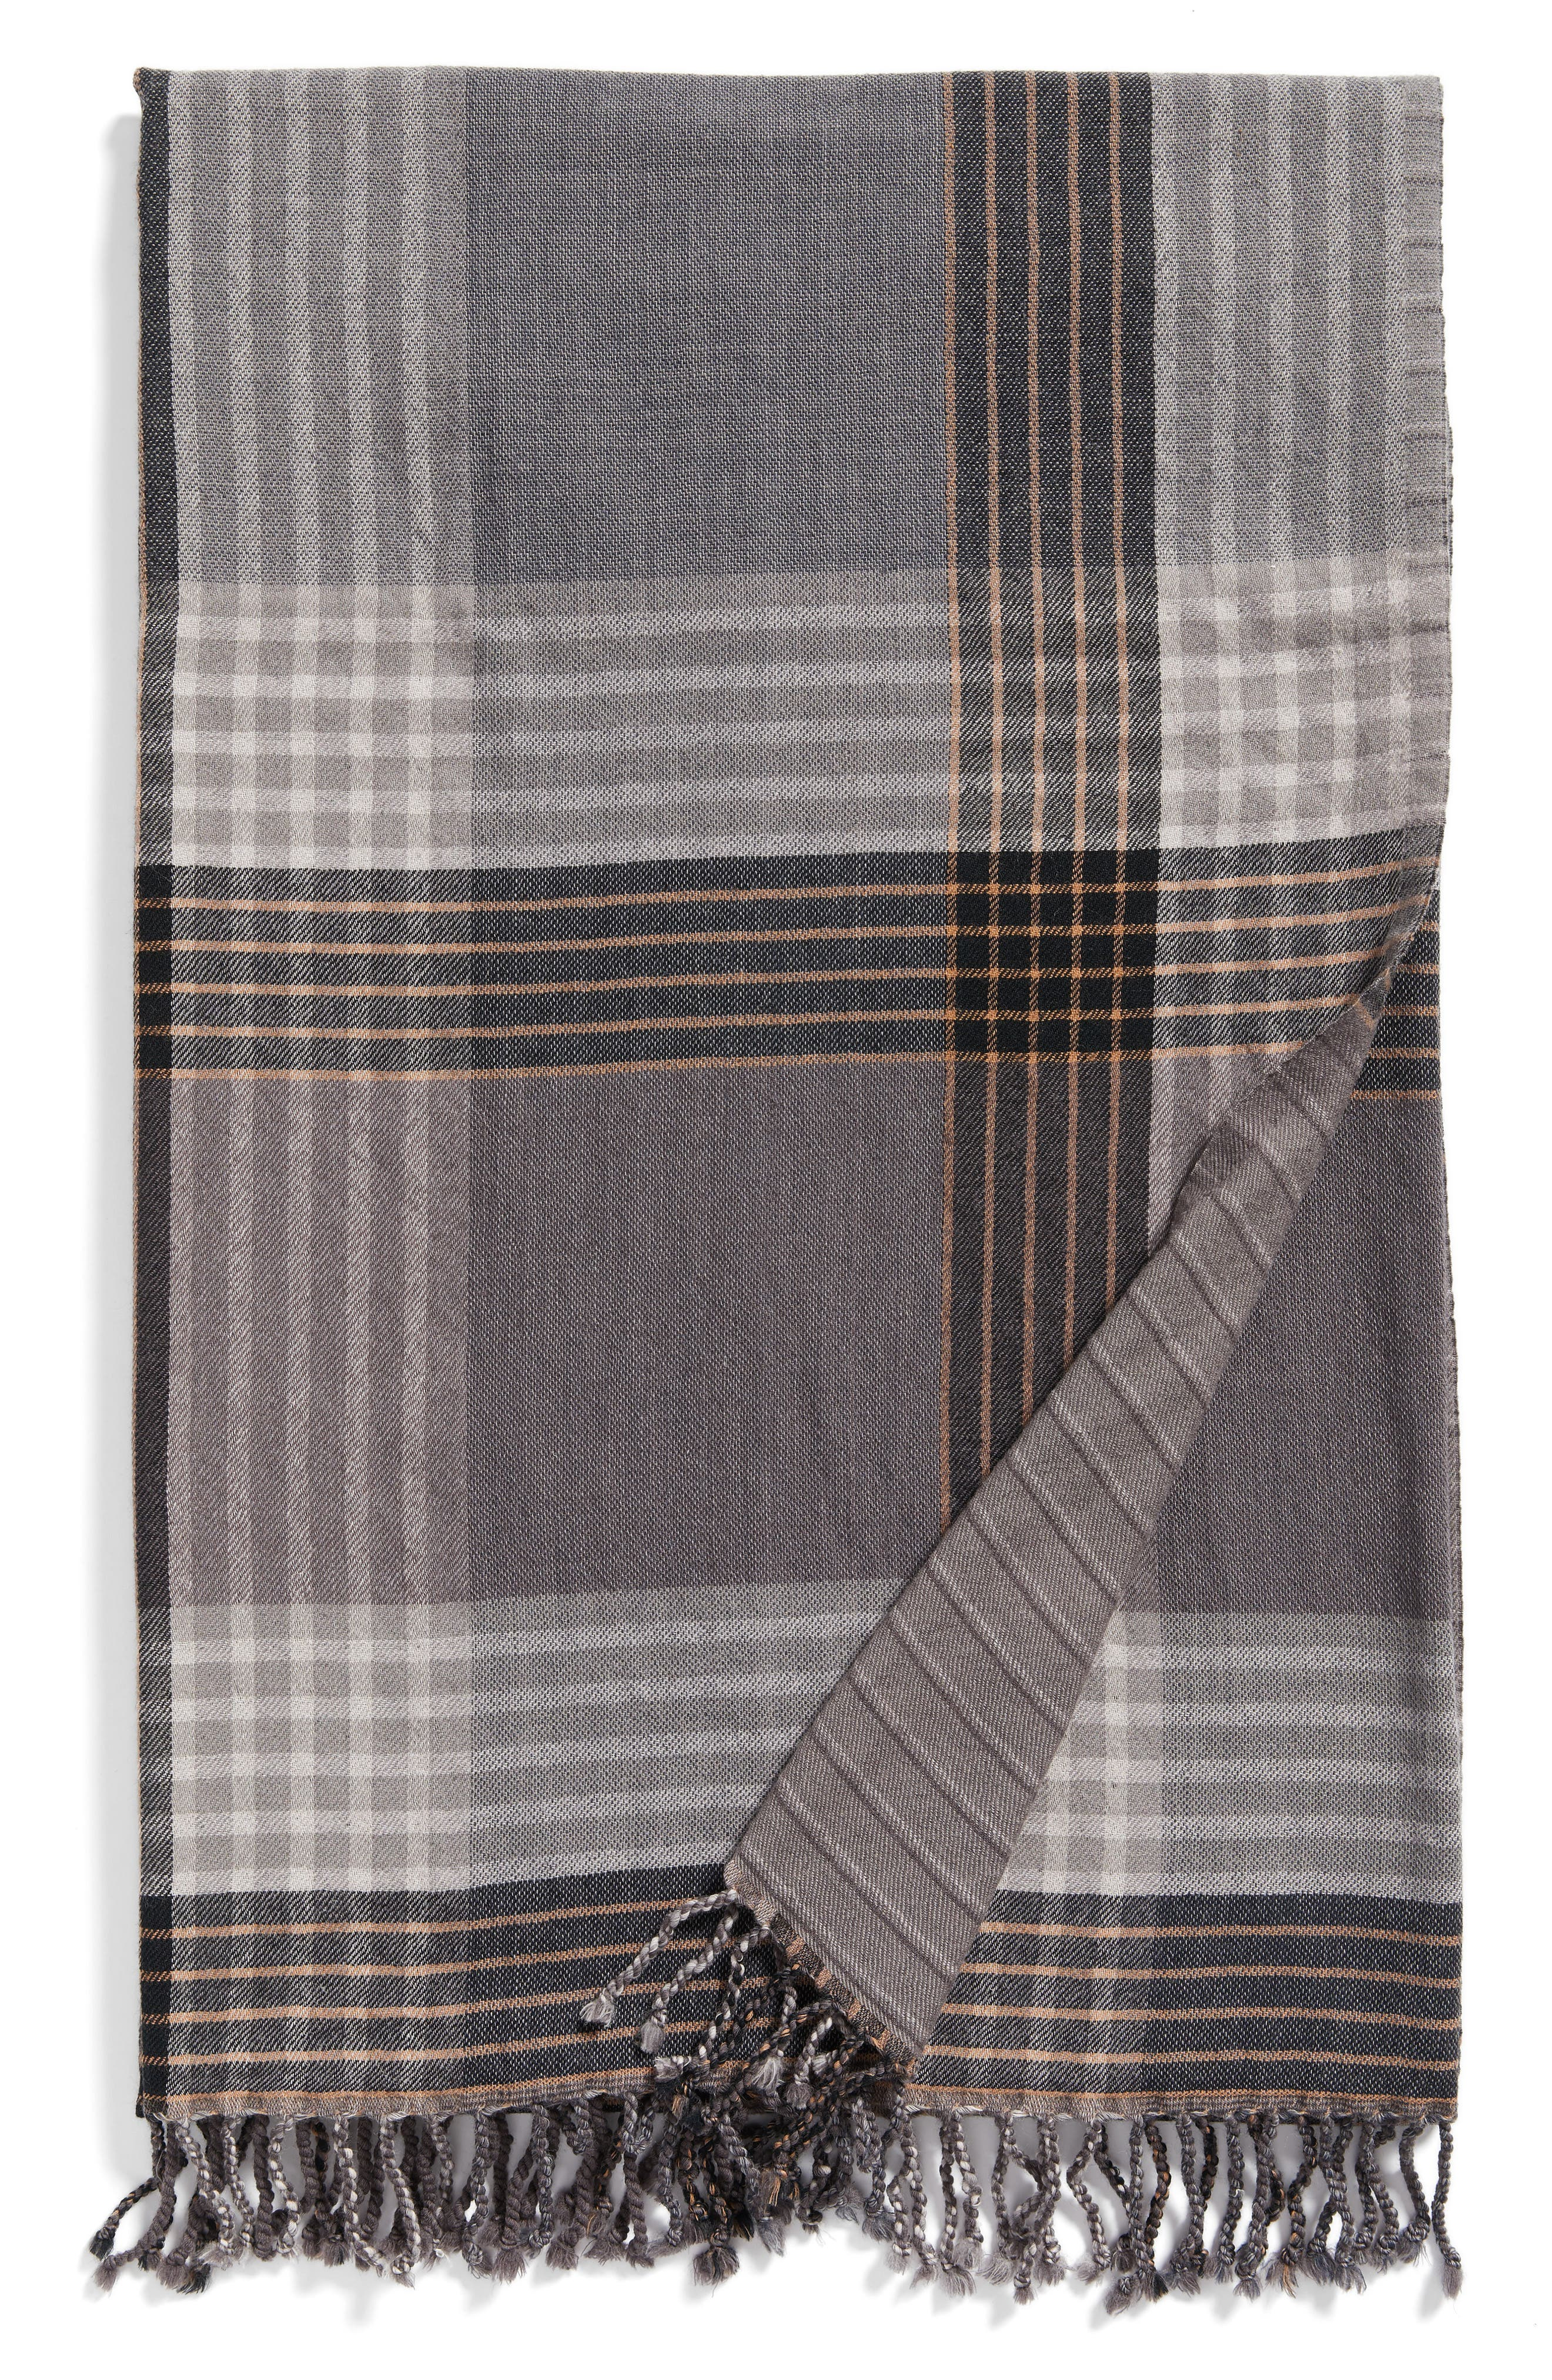 Alternate Image 1 Selected - Modern Staples Plaid Double Face Merino Wool Throw